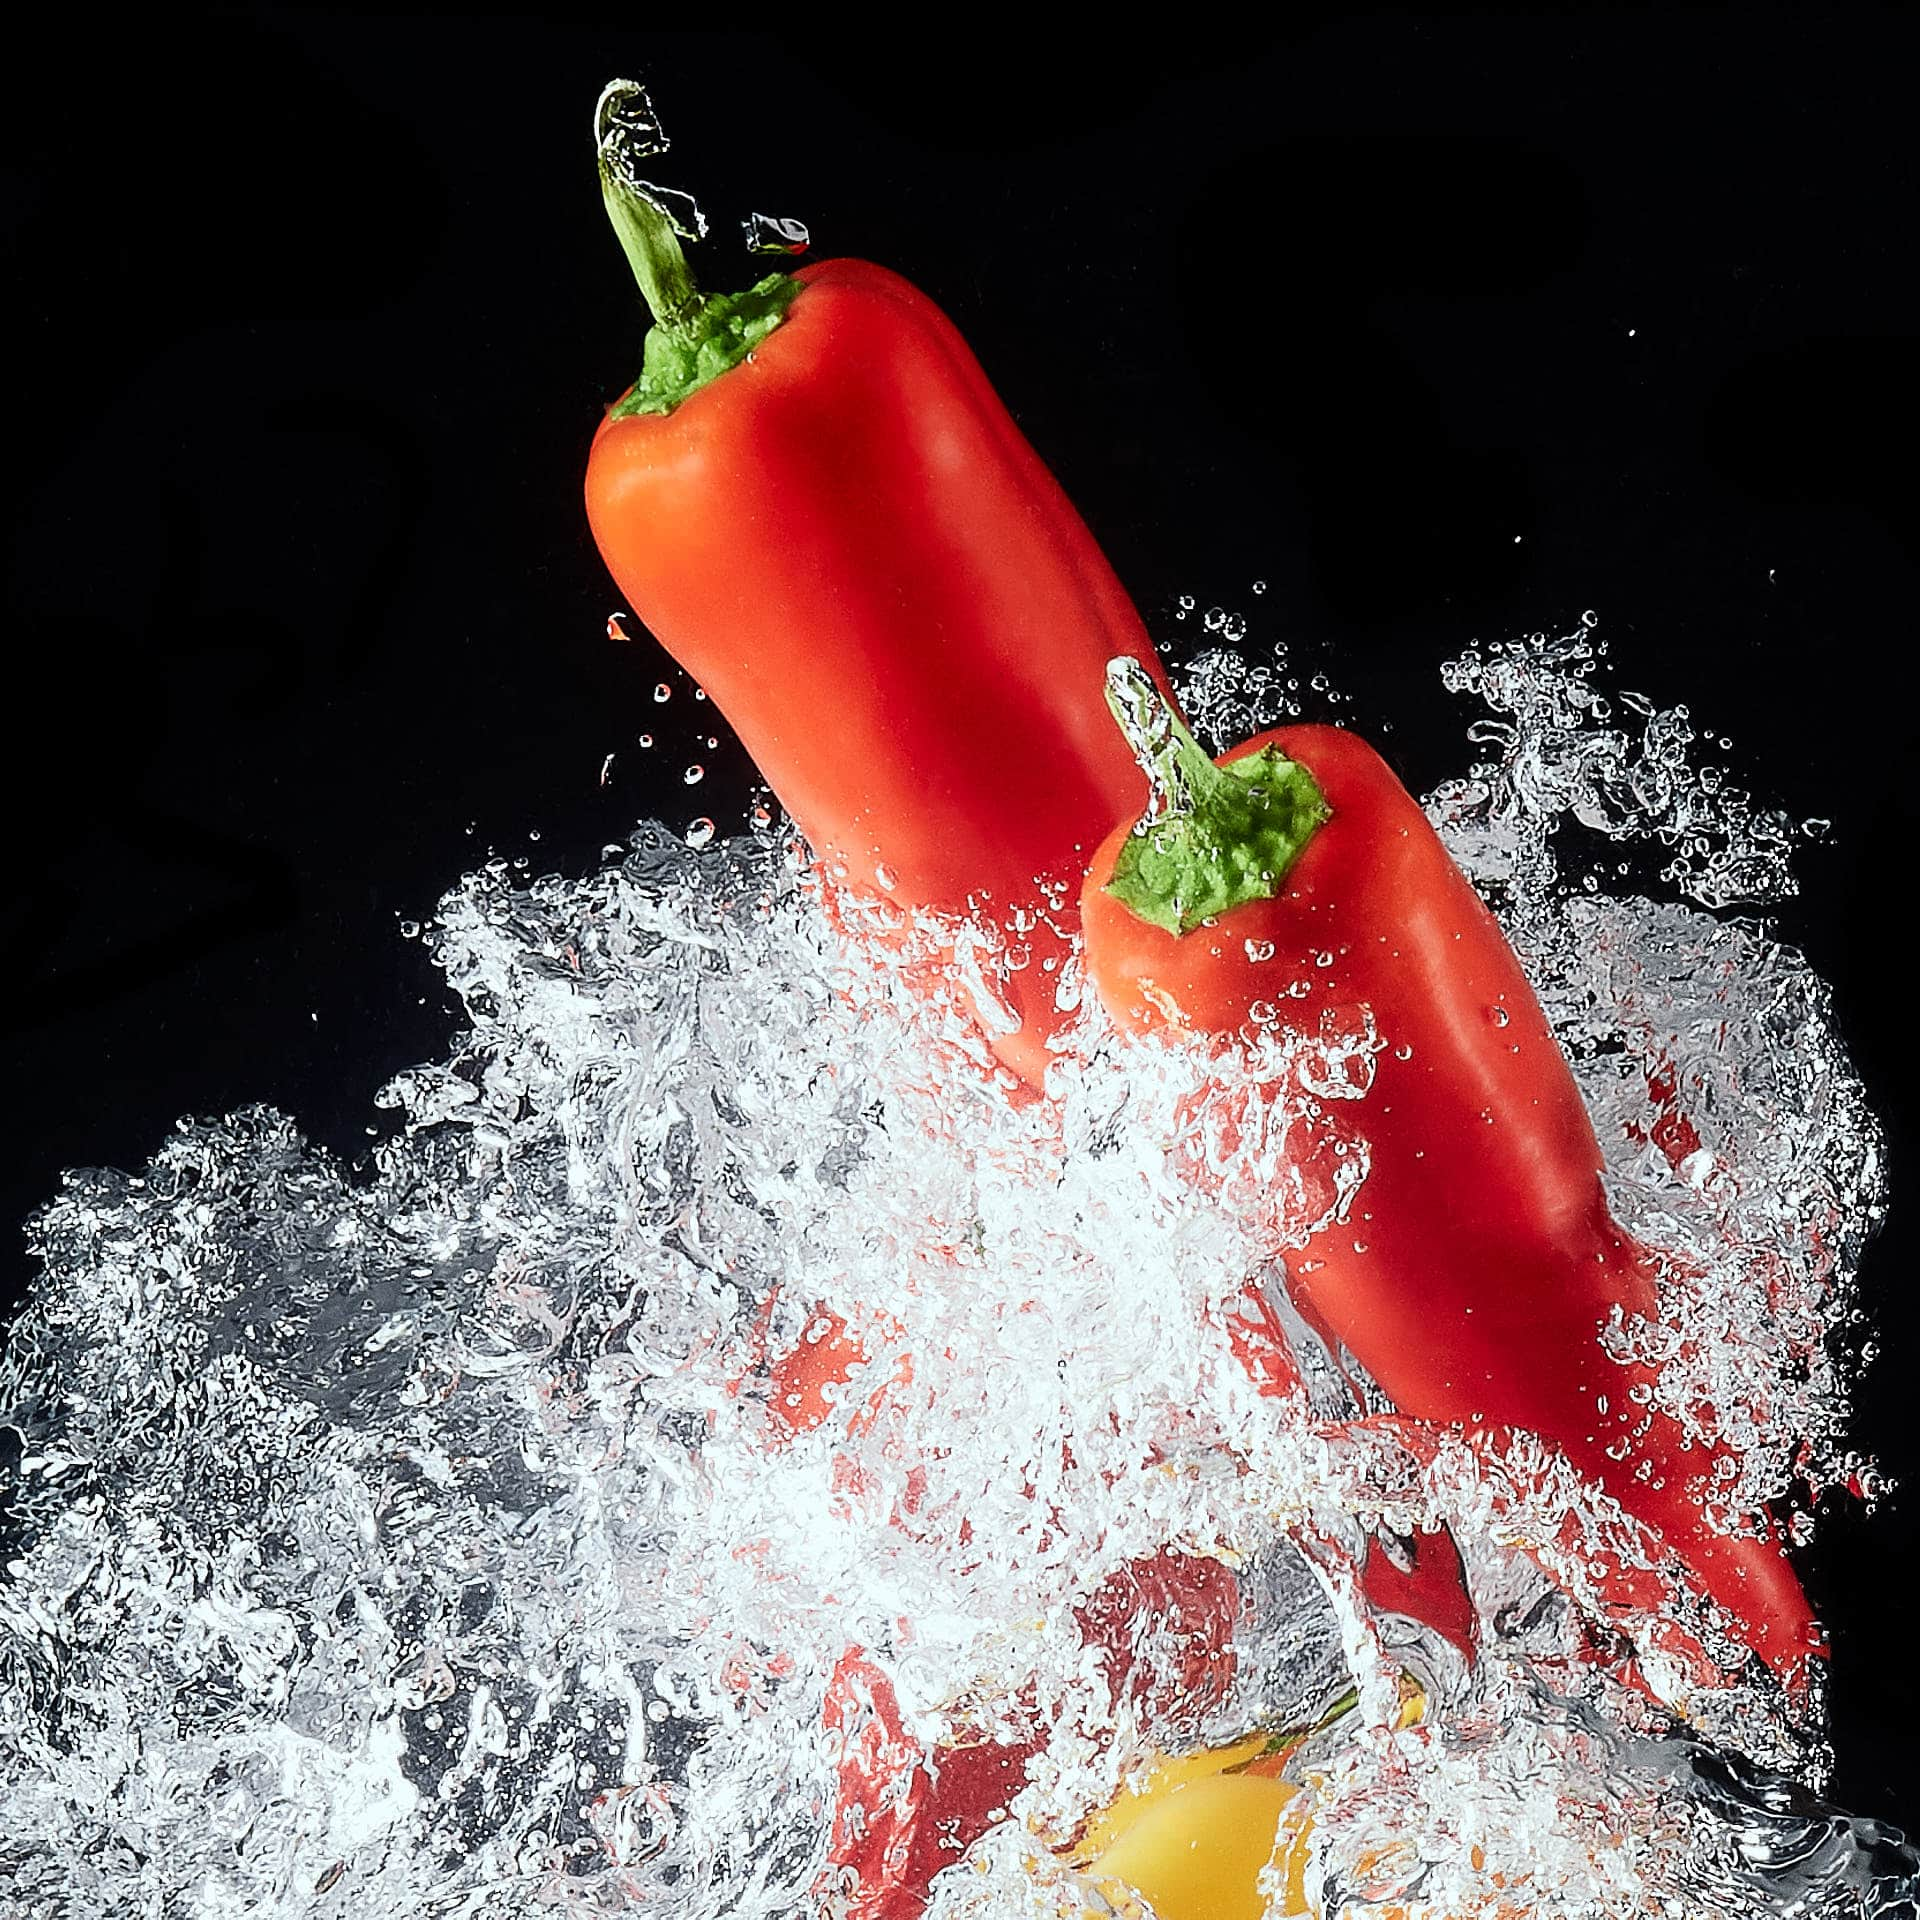 Closeup of sweet red peppers splashing in water on black background.